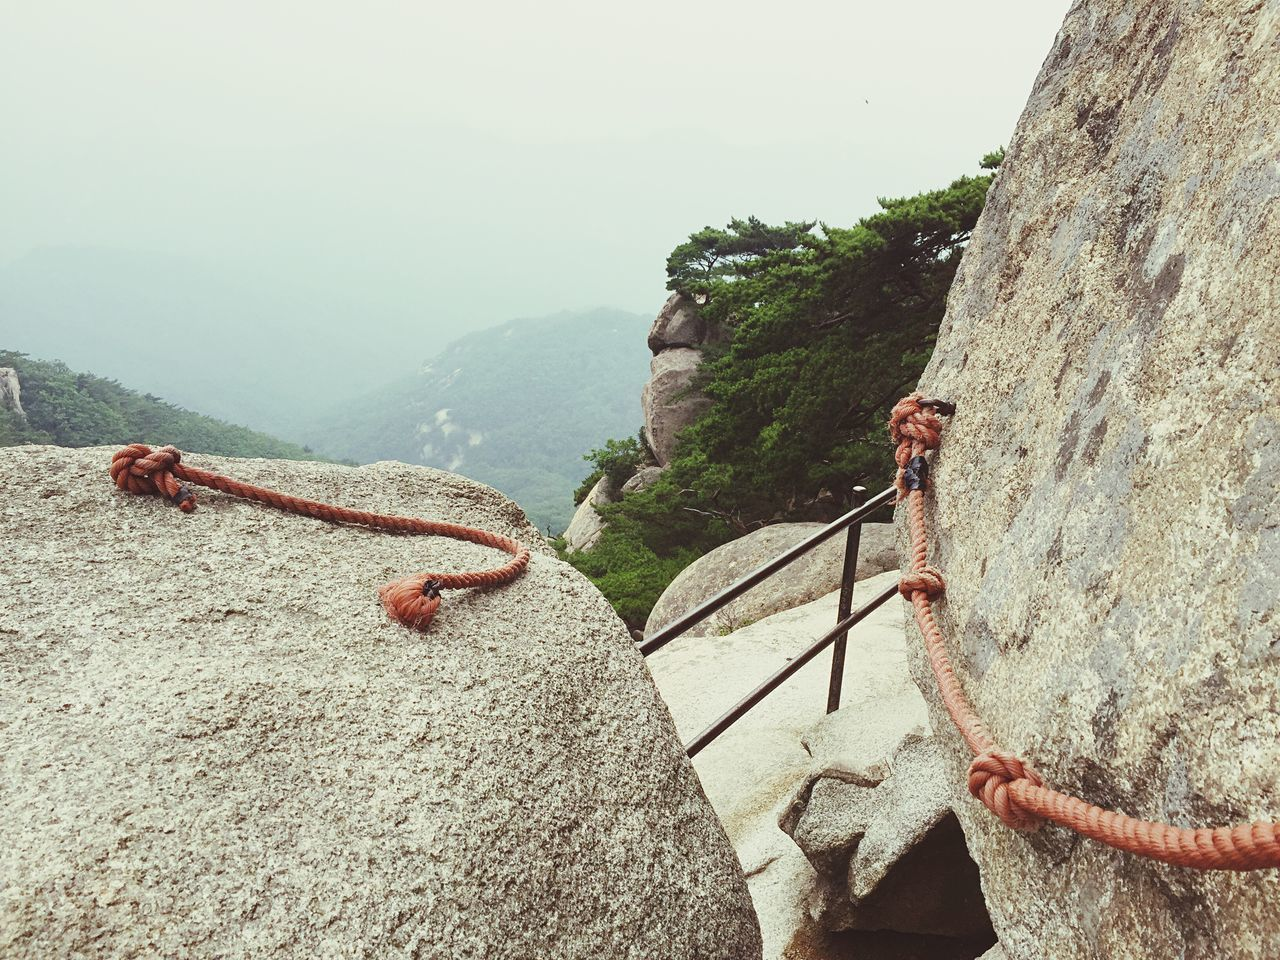 mountain, day, rope, rock - object, adventure, nature, rock climbing, climbing, cliff, outdoors, men, real people, two people, extreme sports, beauty in nature, people